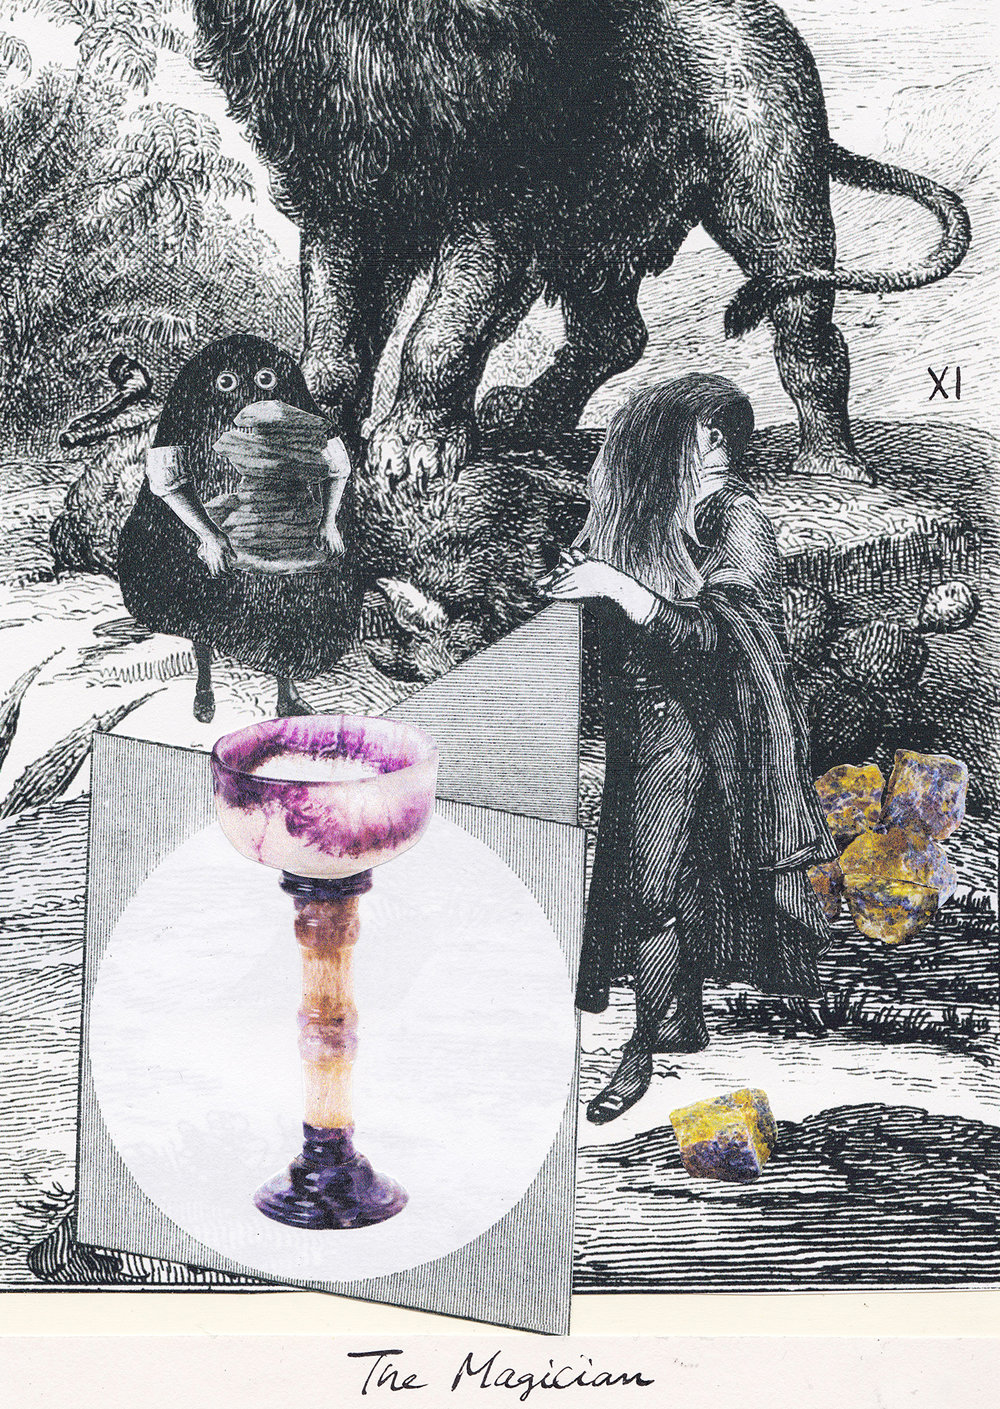 The Magician, Collage Giclée print on Hahnemühle Photo Rag, 21x14.8cm